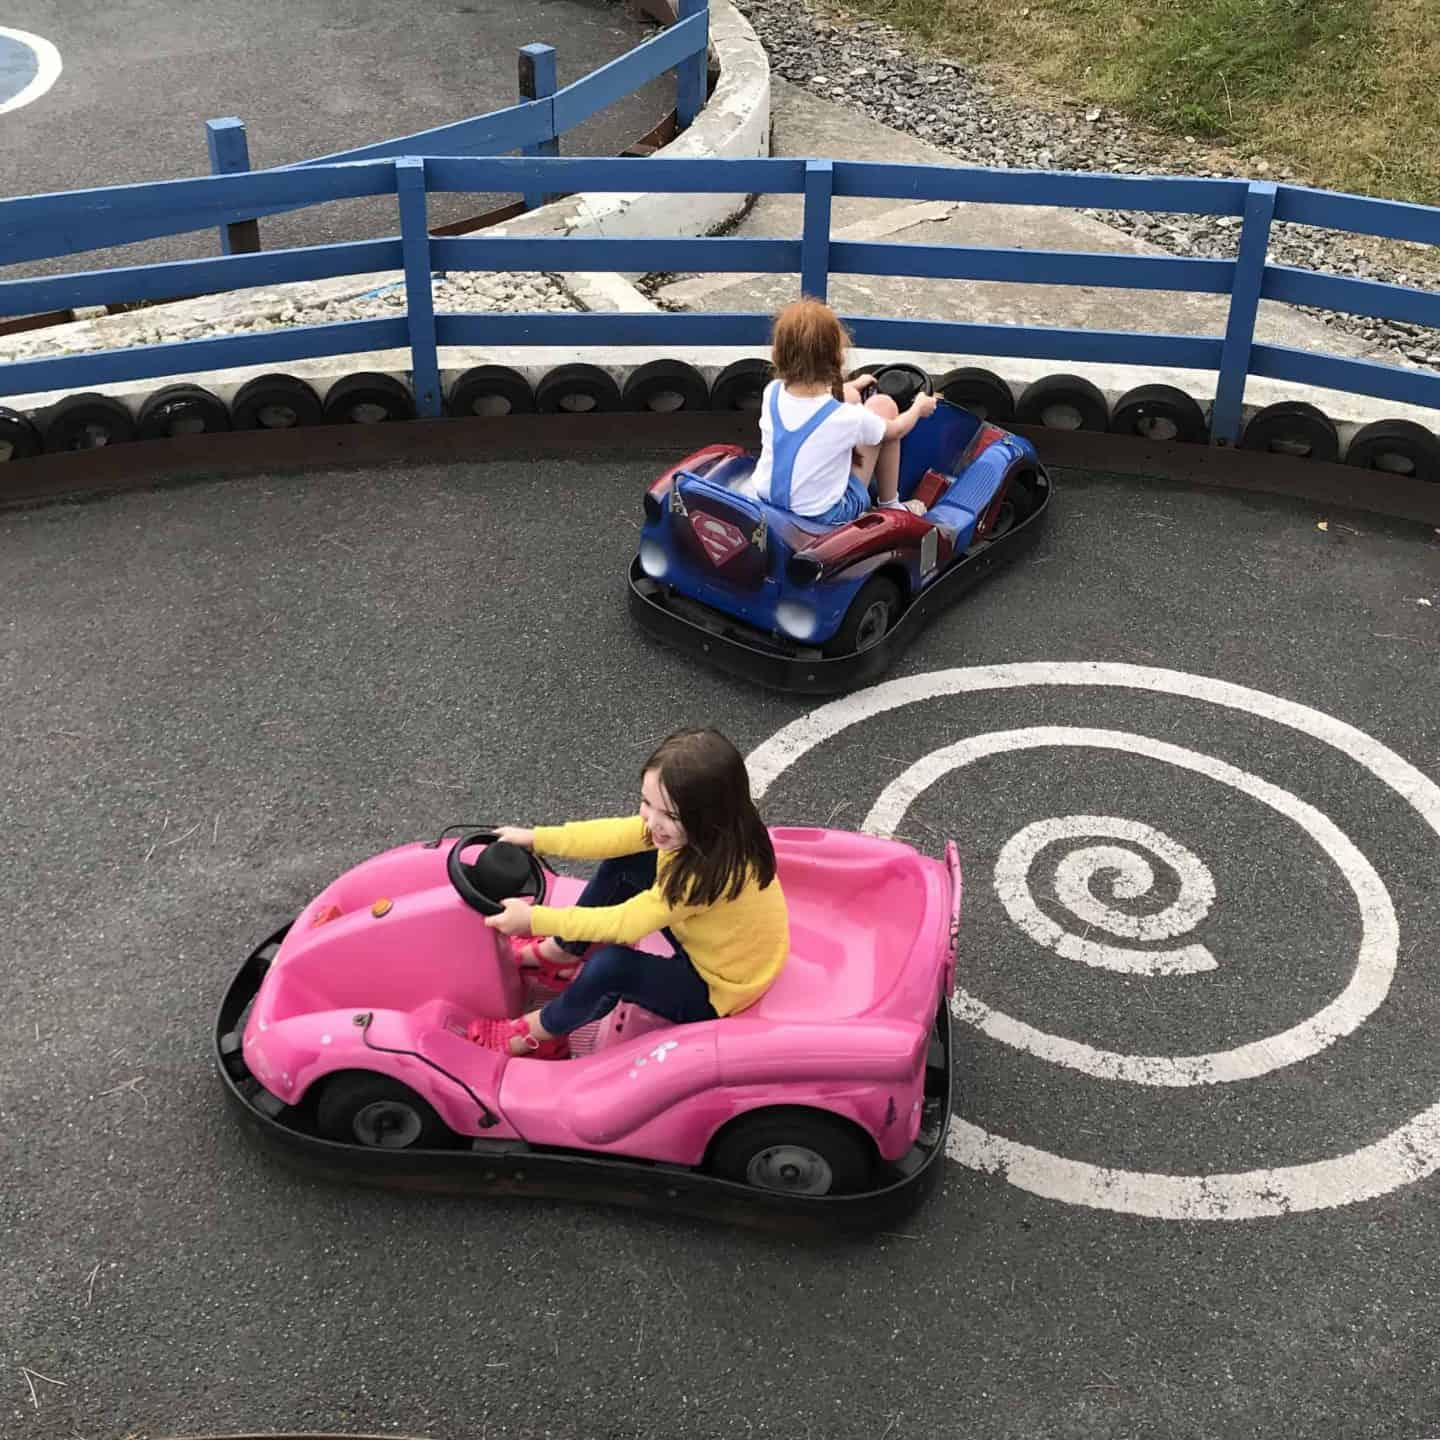 Go cart fun at Holywell Bay Fun Park, Cornwall